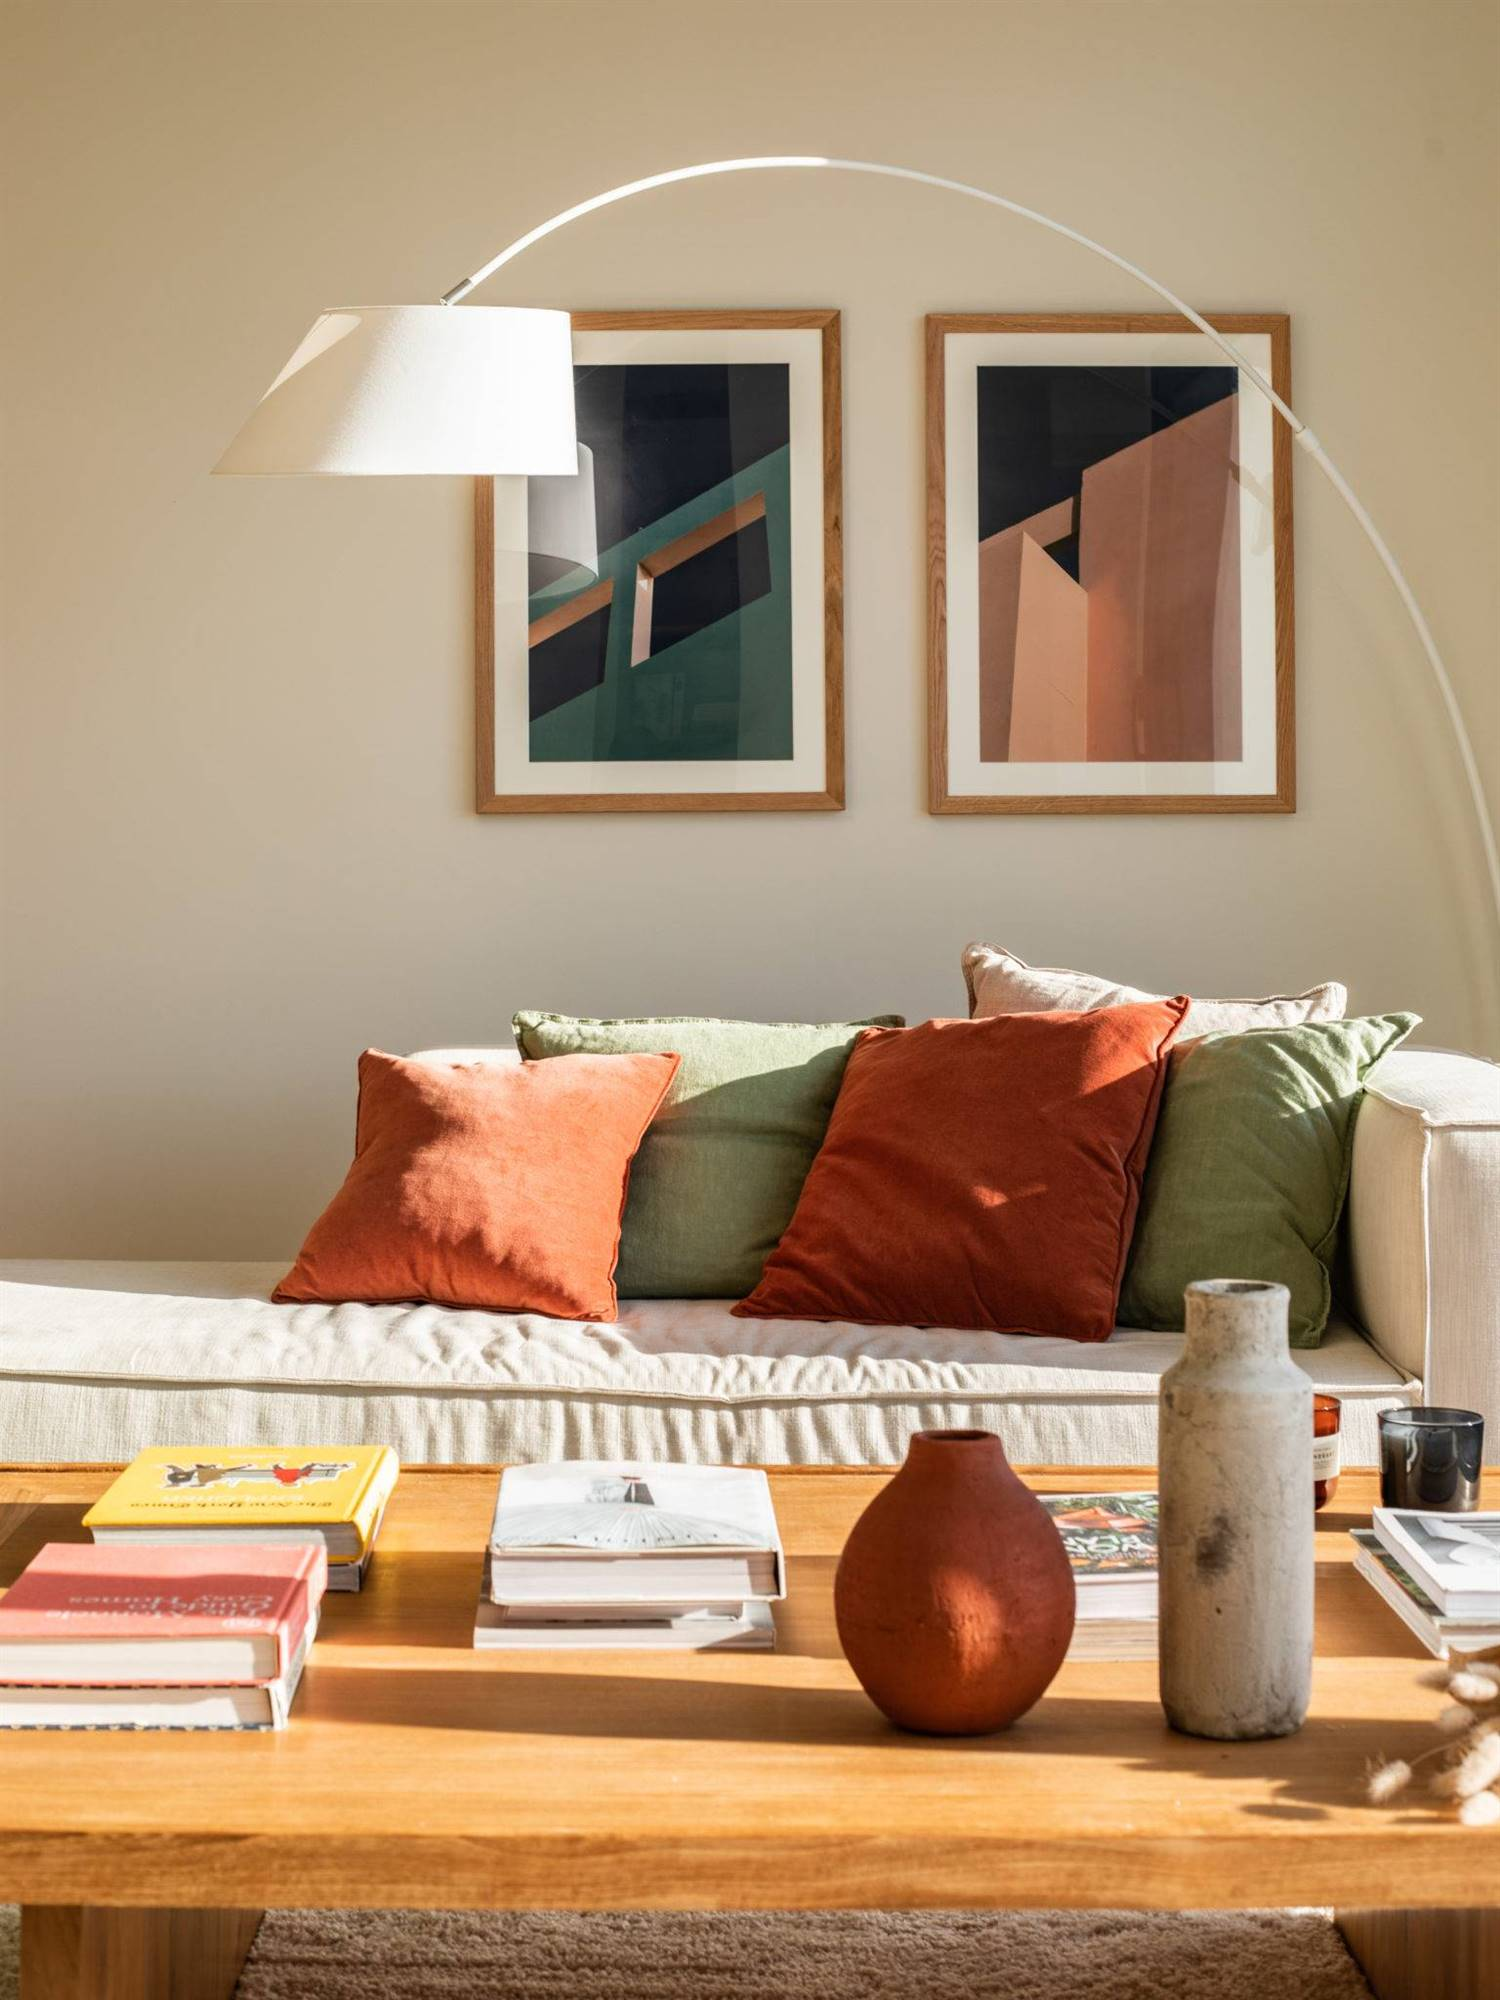 The Home Hunter. Y con muebles escogidos